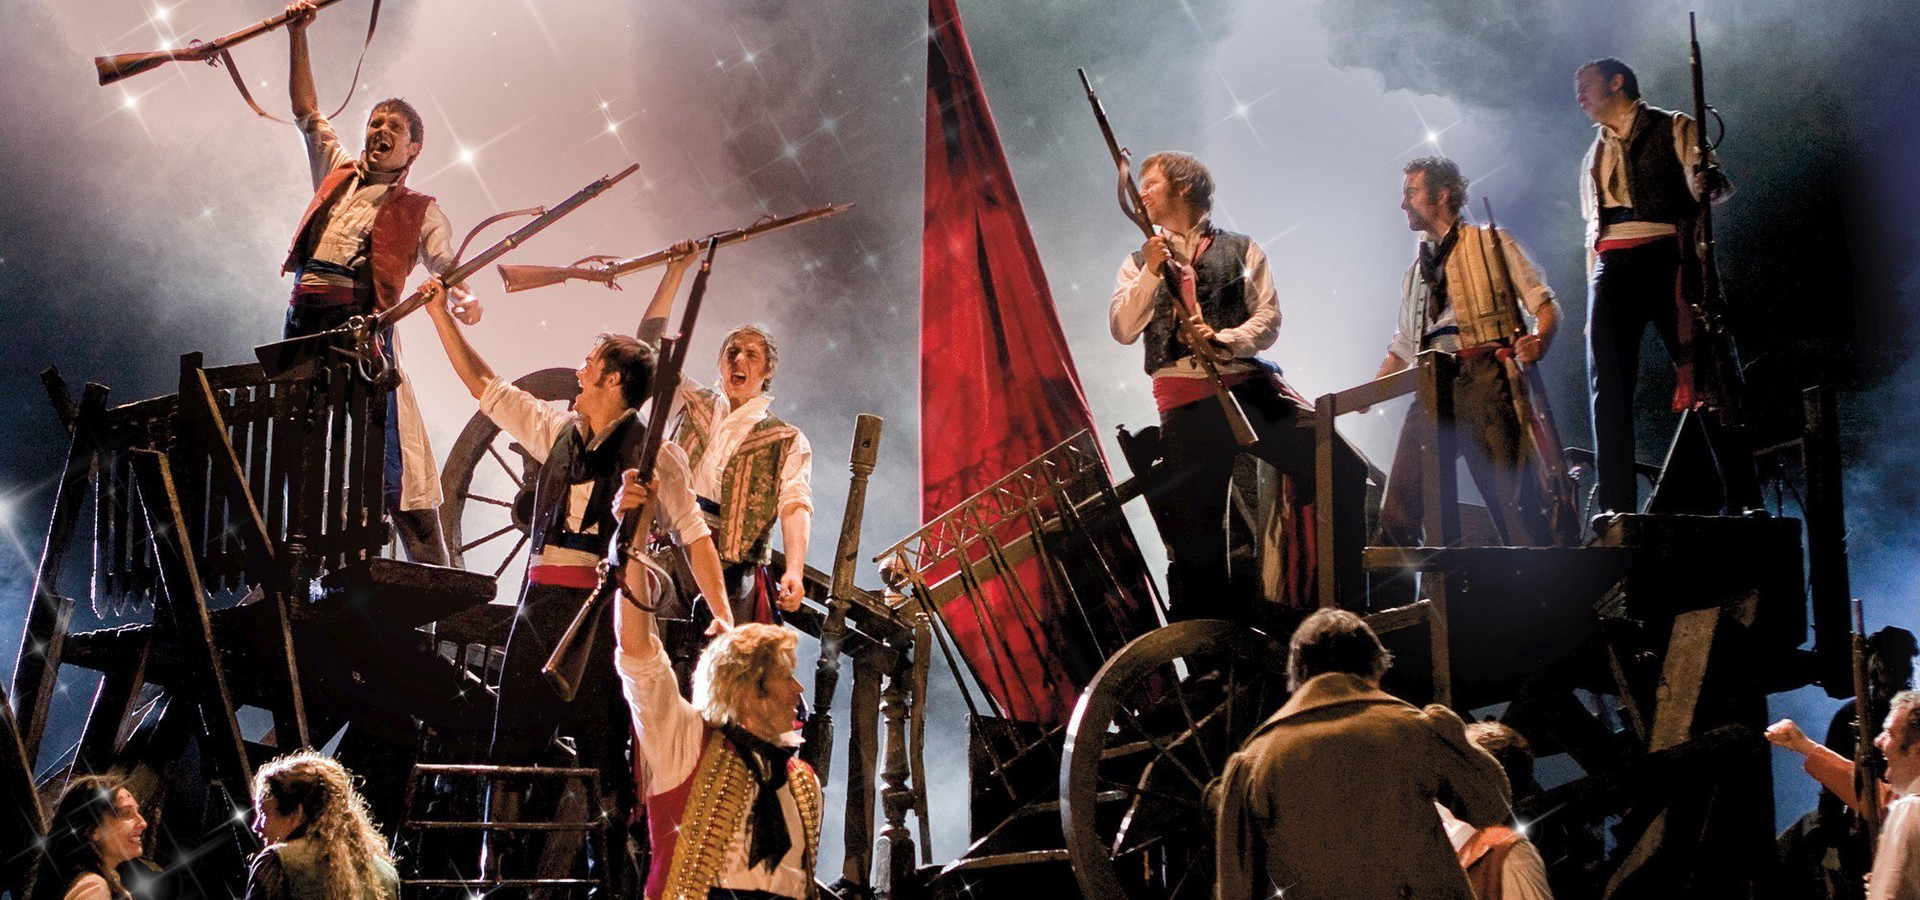 Les Misérables in Concert - The 25th Anniversary